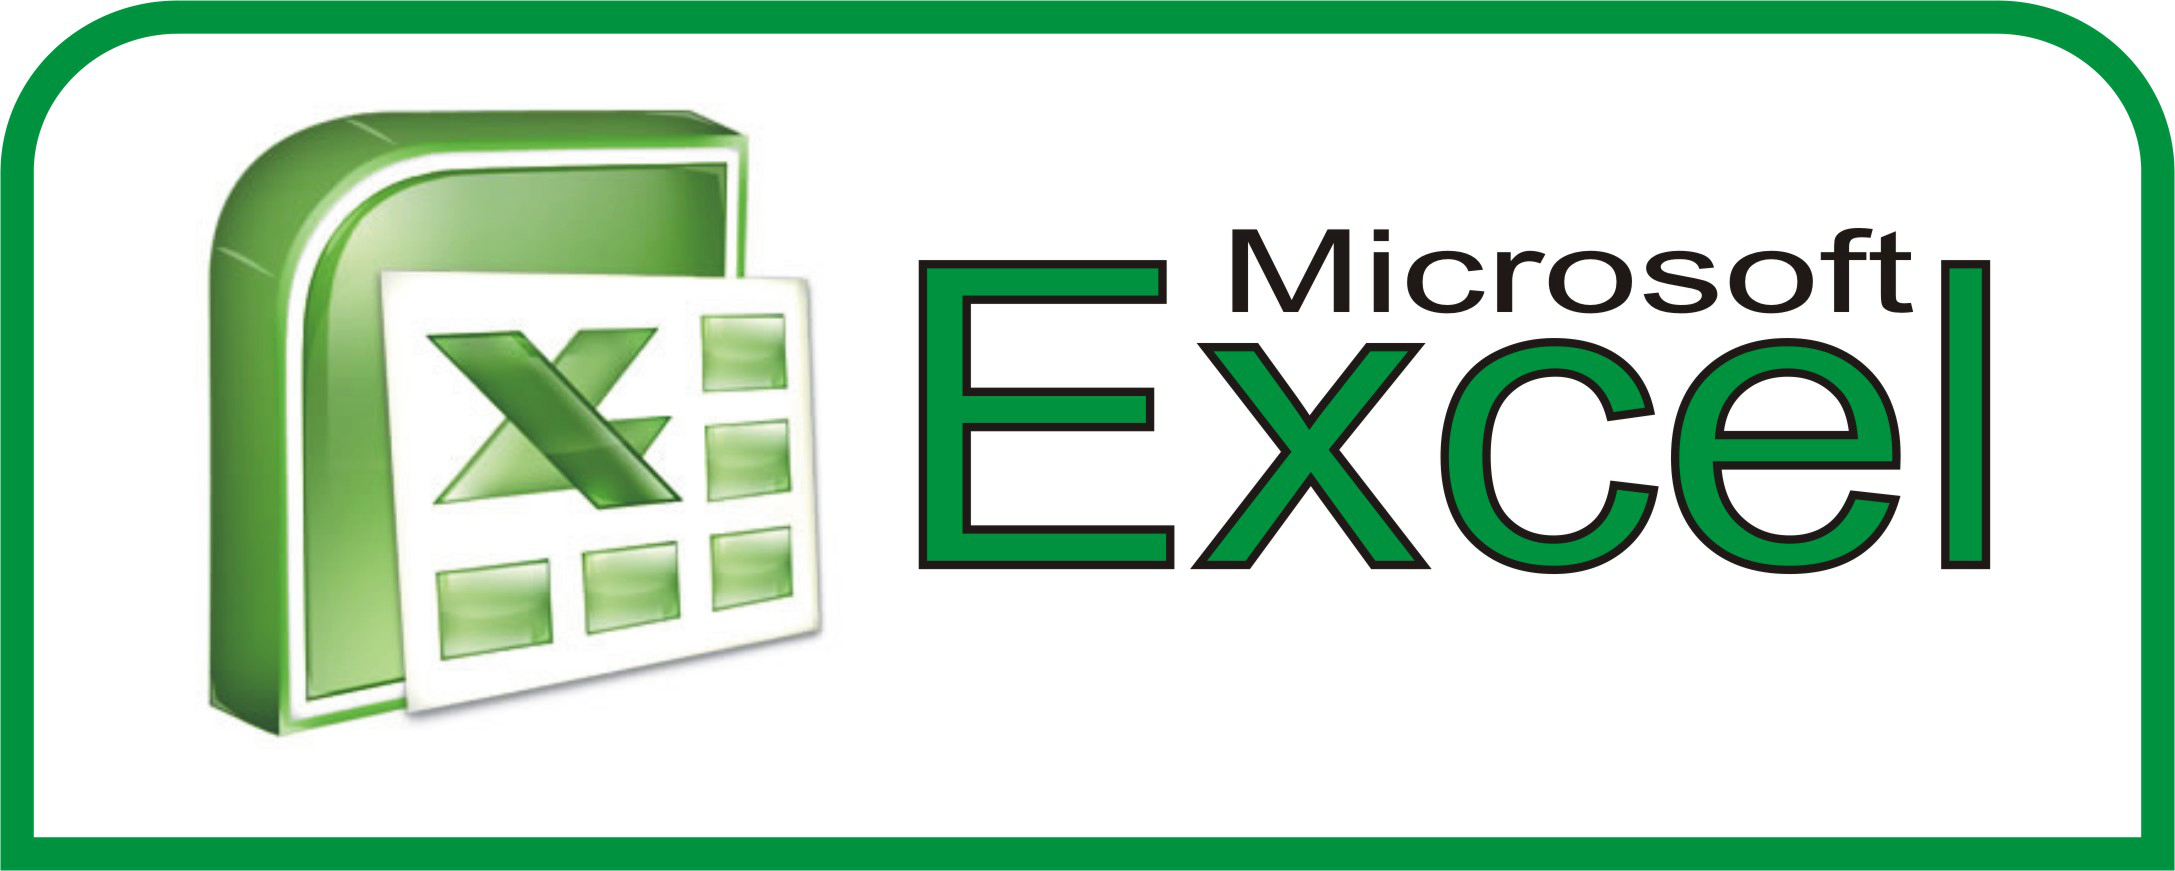 Ediblewildsus  Marvelous  Excel Shortcuts You Probably Didnt Know About  Techdissected With Handsome Excel Dental Ozark Mo Besides Water Mark In Excel Furthermore Excel Title Group With Enchanting Sum Of Column In Excel Also Locking Cells In Excel  In Addition Auto Populate Date In Excel And Learn To Use Excel As Well As Excel Insert Check Mark Additionally Excel Mime Type From Techdissectedcom With Ediblewildsus  Handsome  Excel Shortcuts You Probably Didnt Know About  Techdissected With Enchanting Excel Dental Ozark Mo Besides Water Mark In Excel Furthermore Excel Title Group And Marvelous Sum Of Column In Excel Also Locking Cells In Excel  In Addition Auto Populate Date In Excel From Techdissectedcom